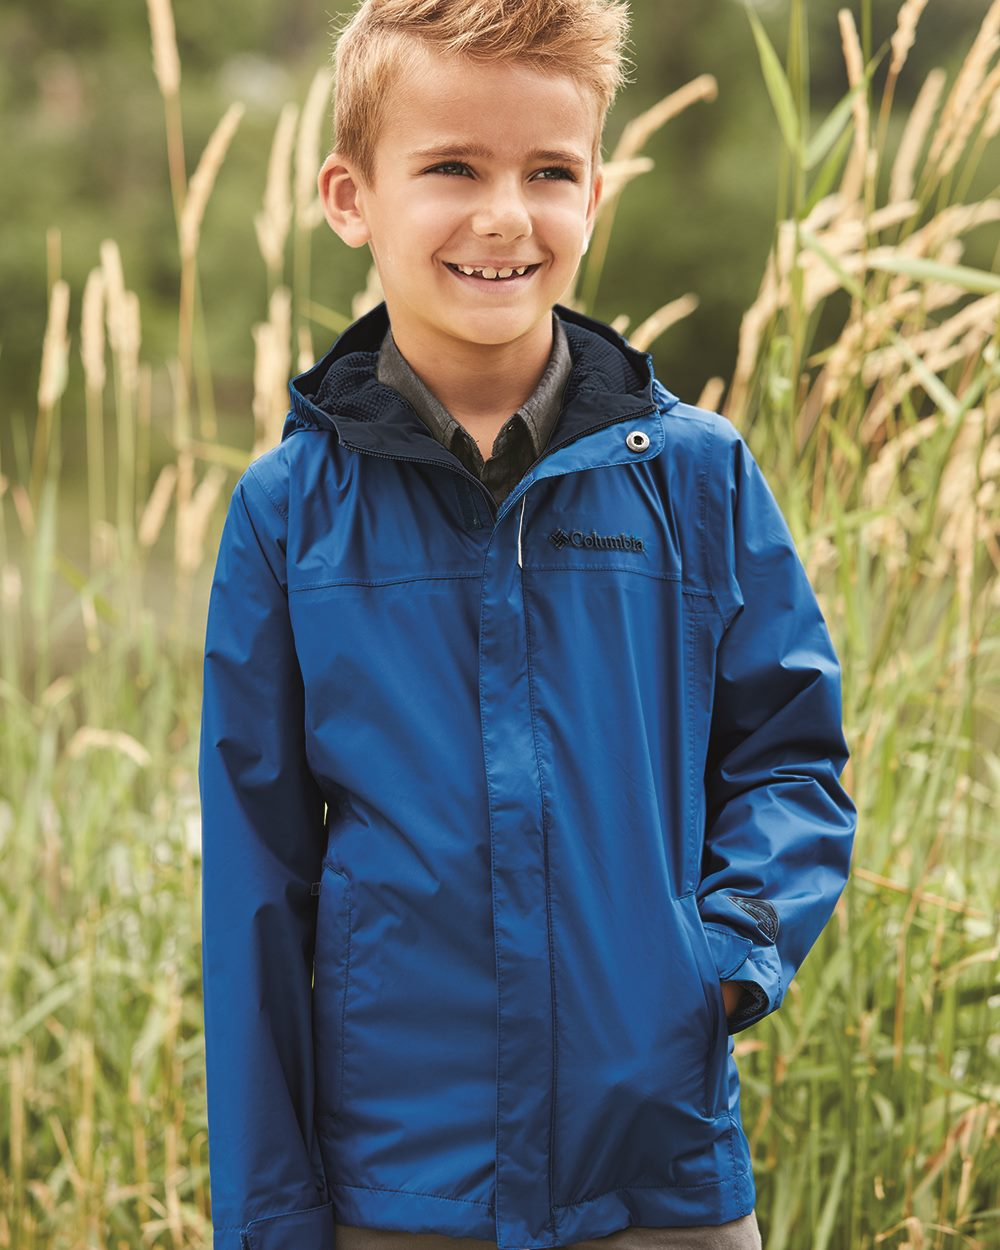 Columbia 158064 - Youth Watertight Jacket